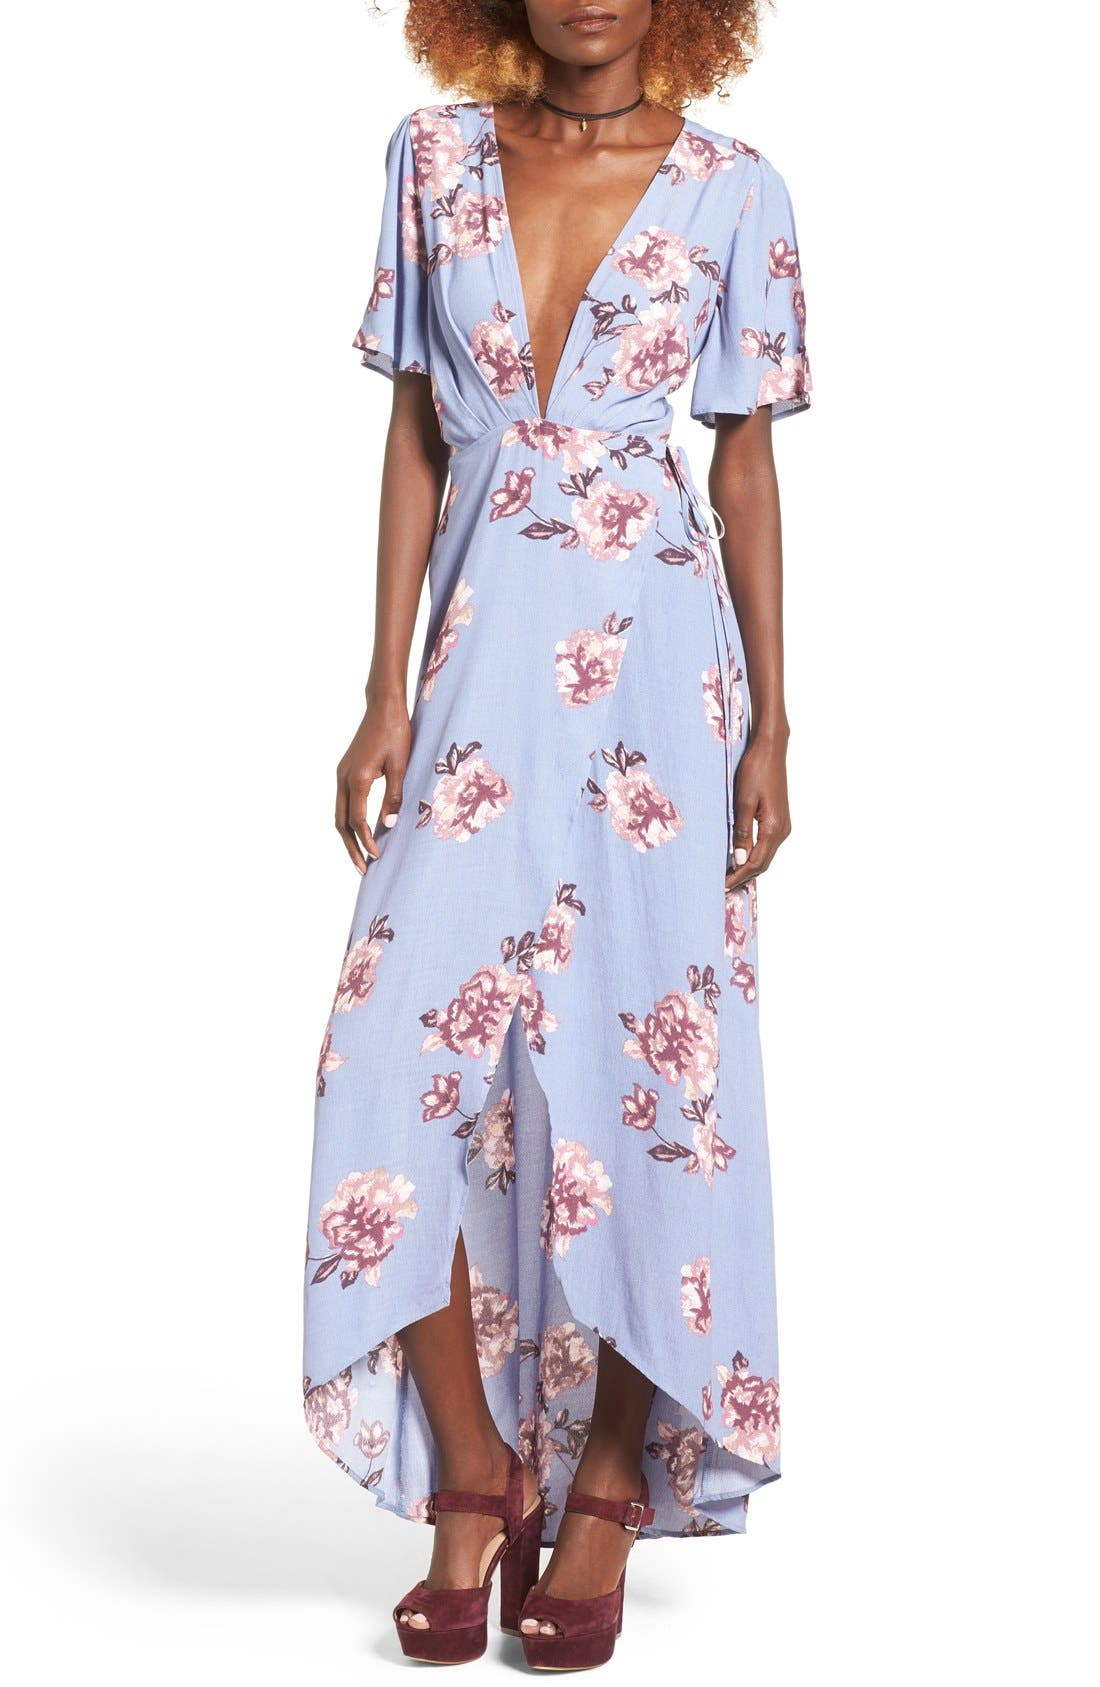 Main Image - ASTR Selma Floral Print Wrap Dress